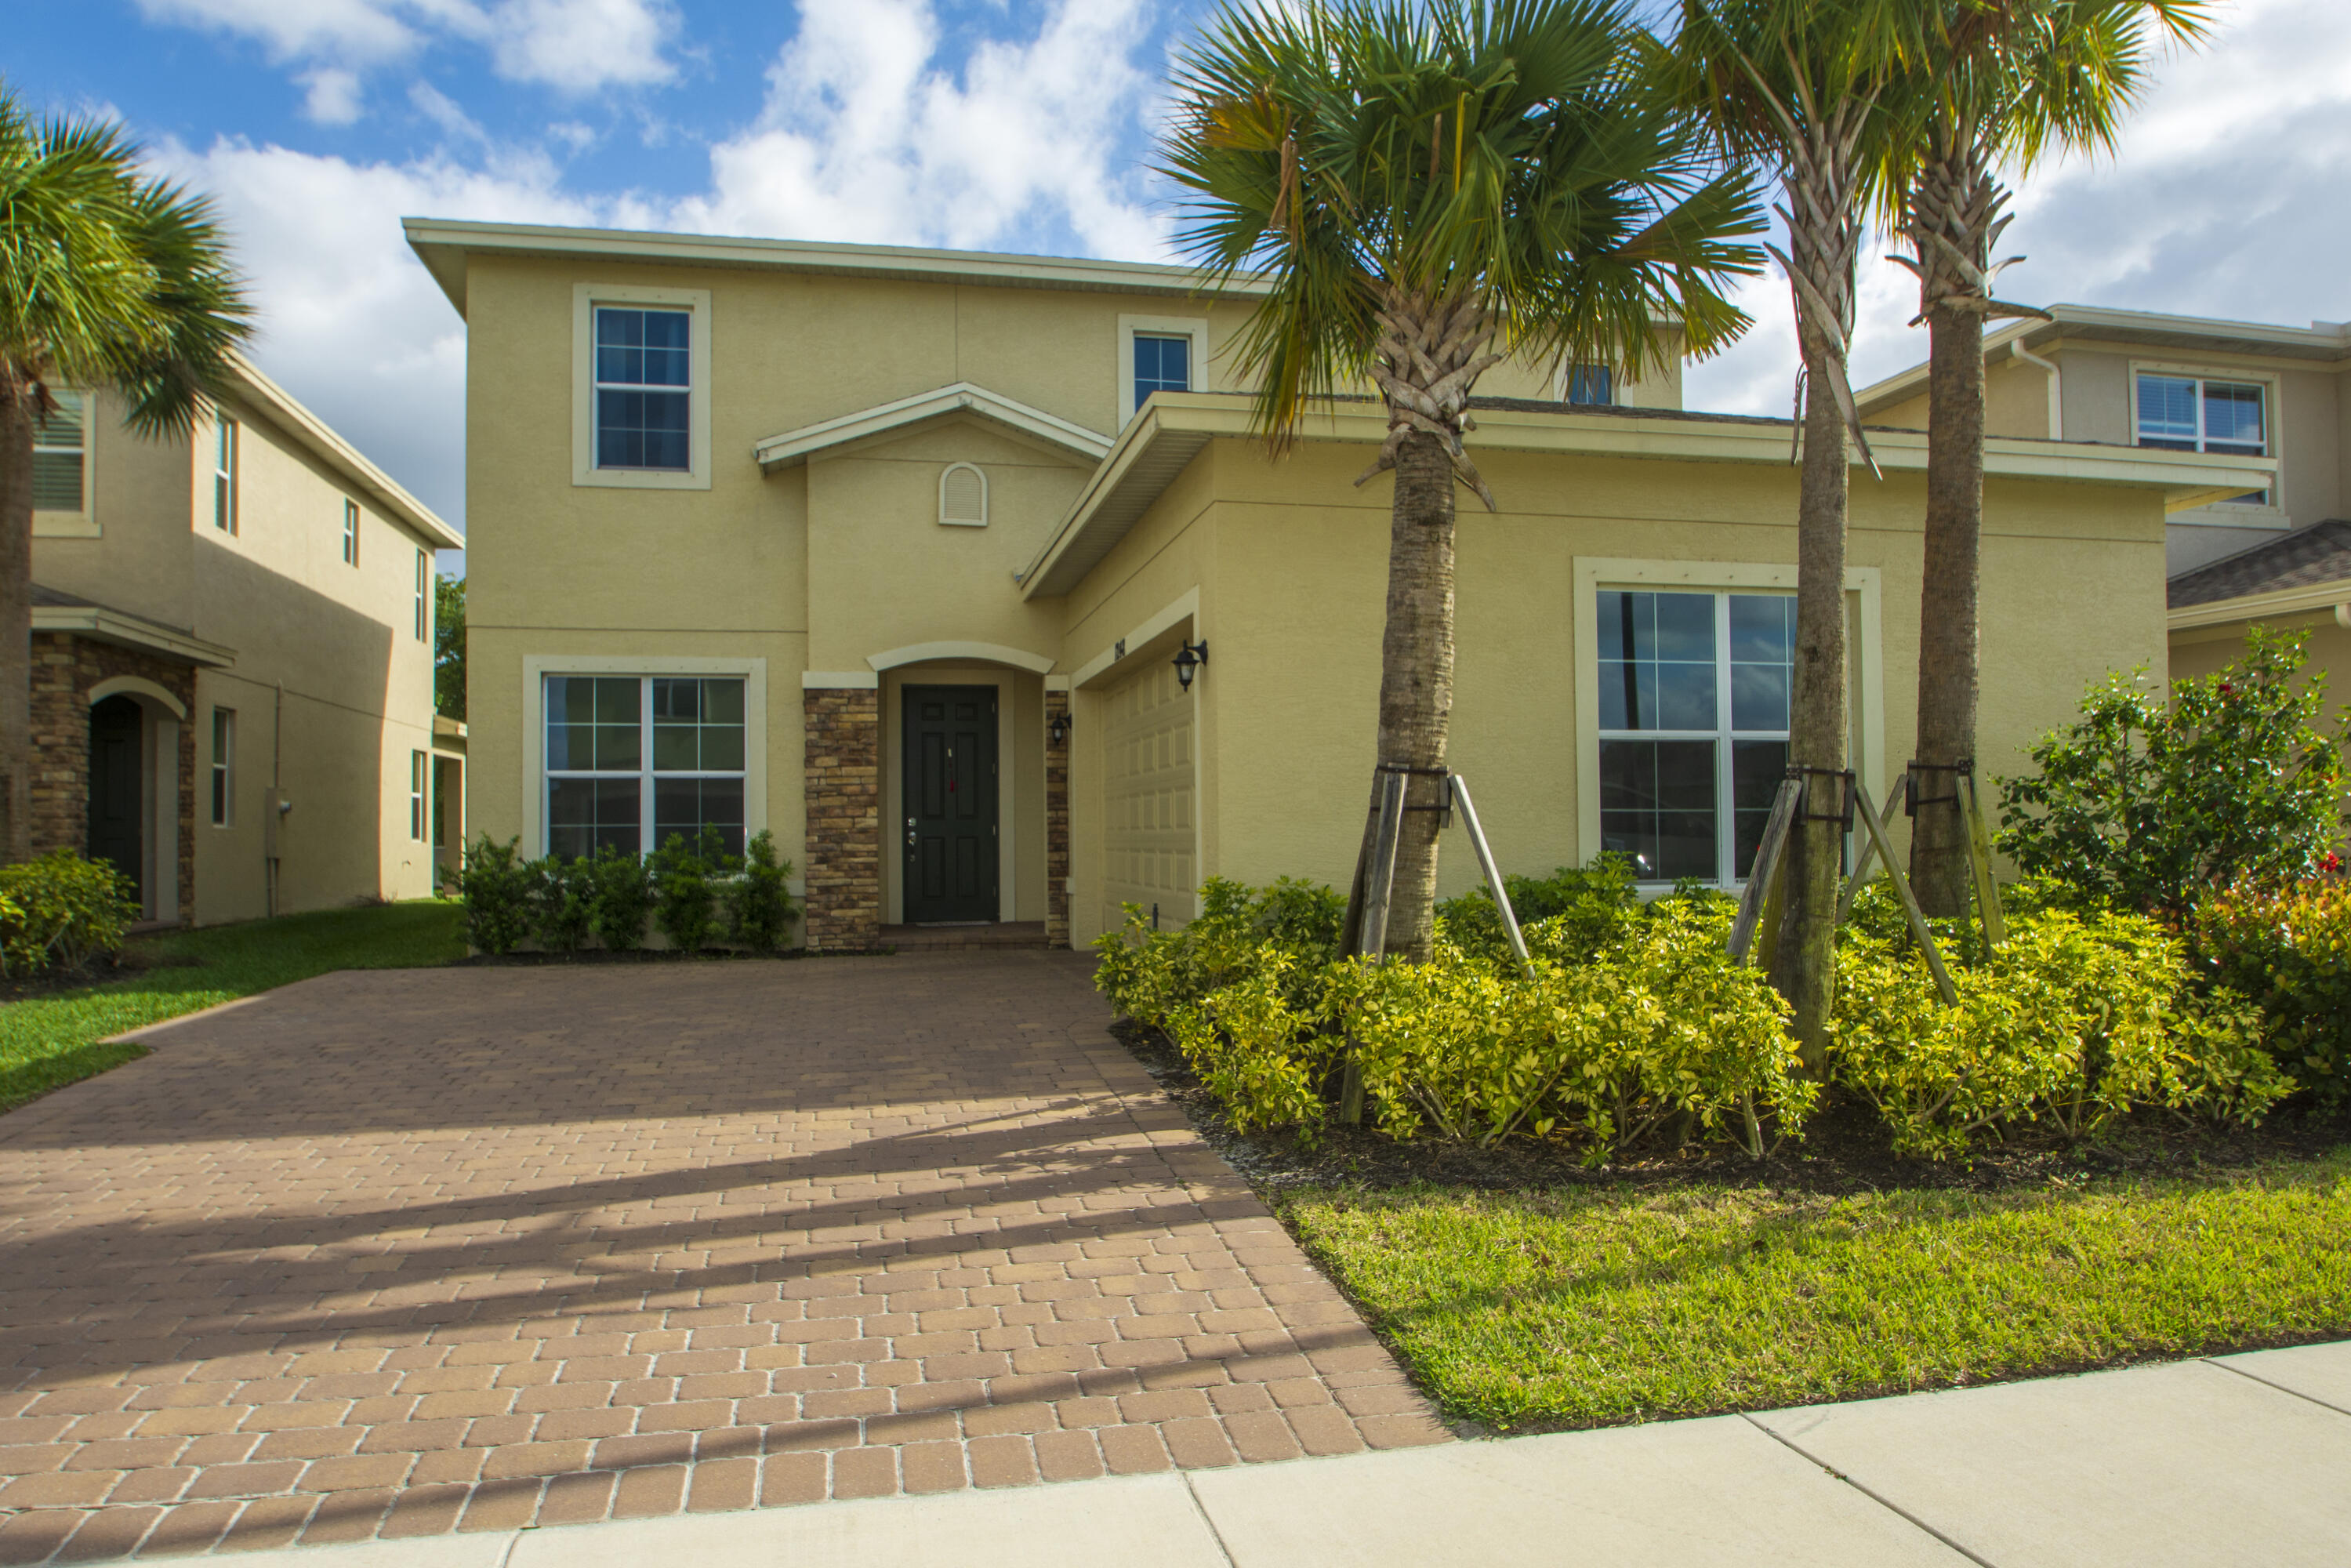 Home for sale in Vizcaya Falls Port Saint Lucie Florida